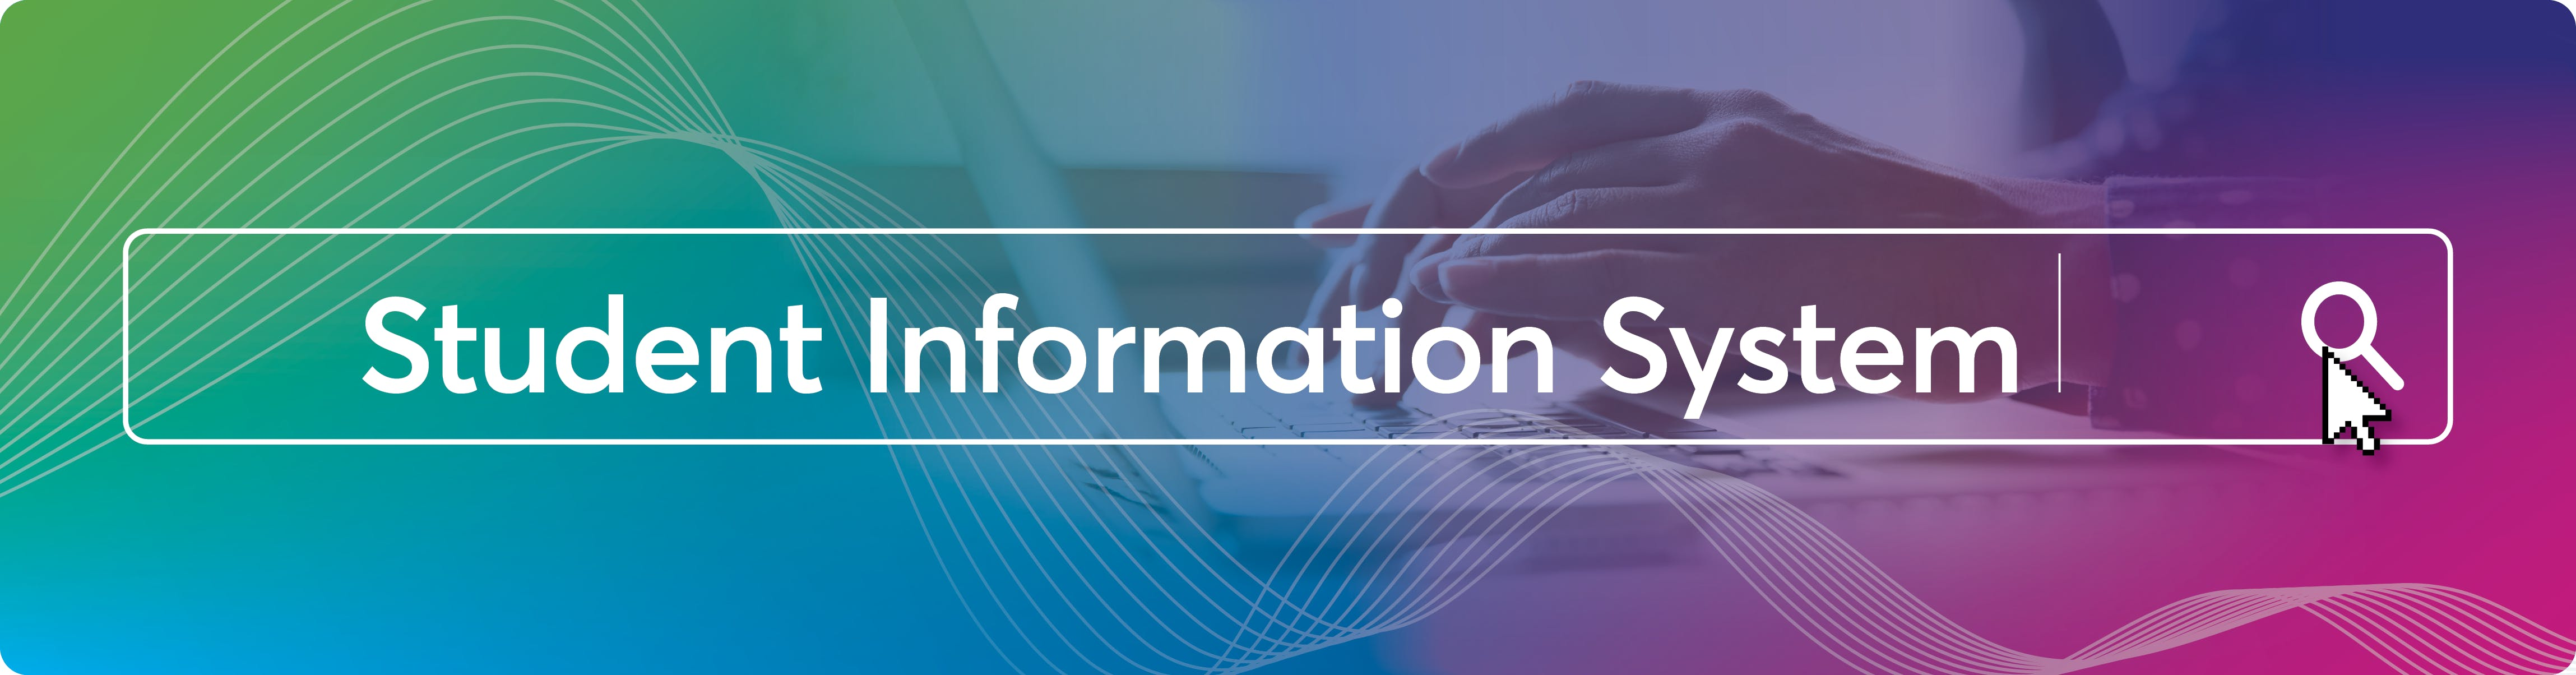 What is a Student Information System?